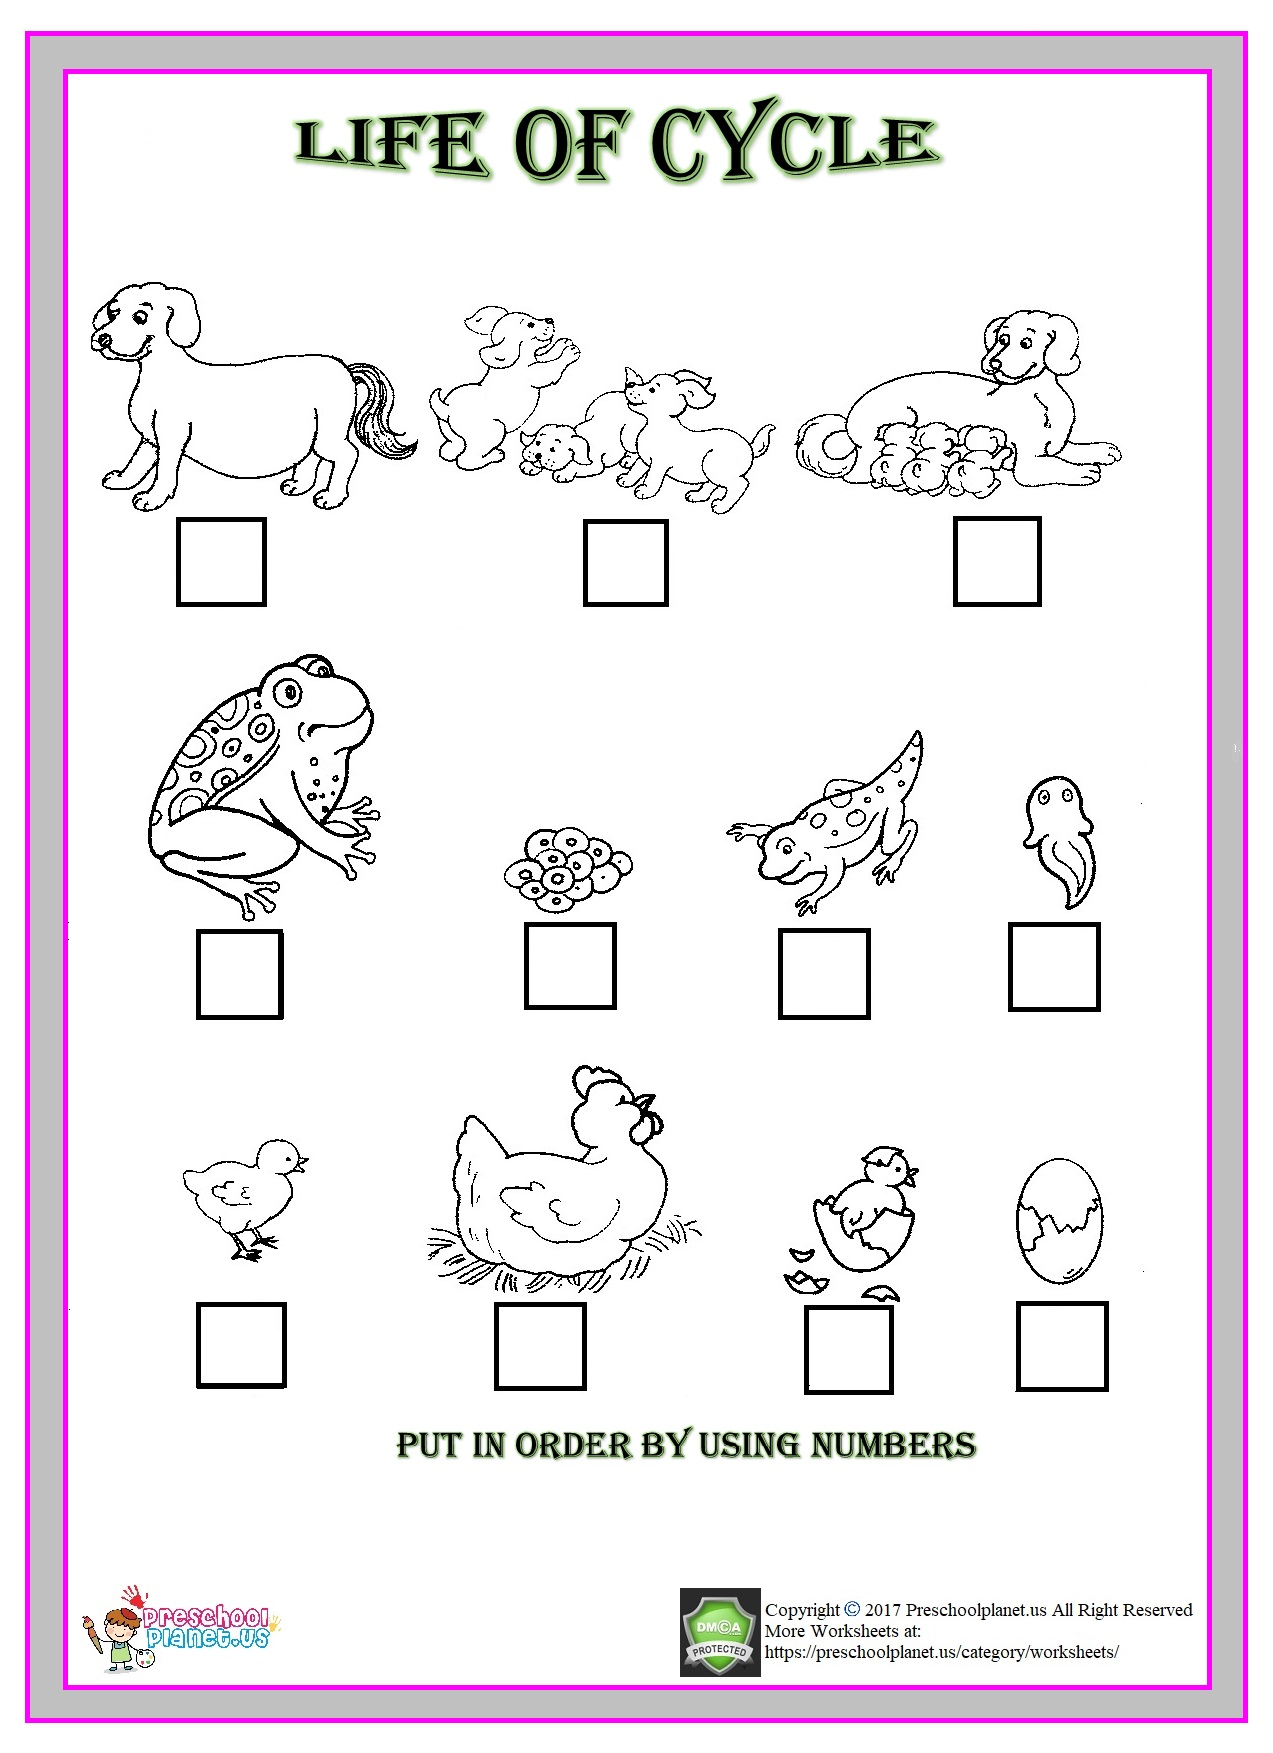 Animal Worksheet Preschoolplanet